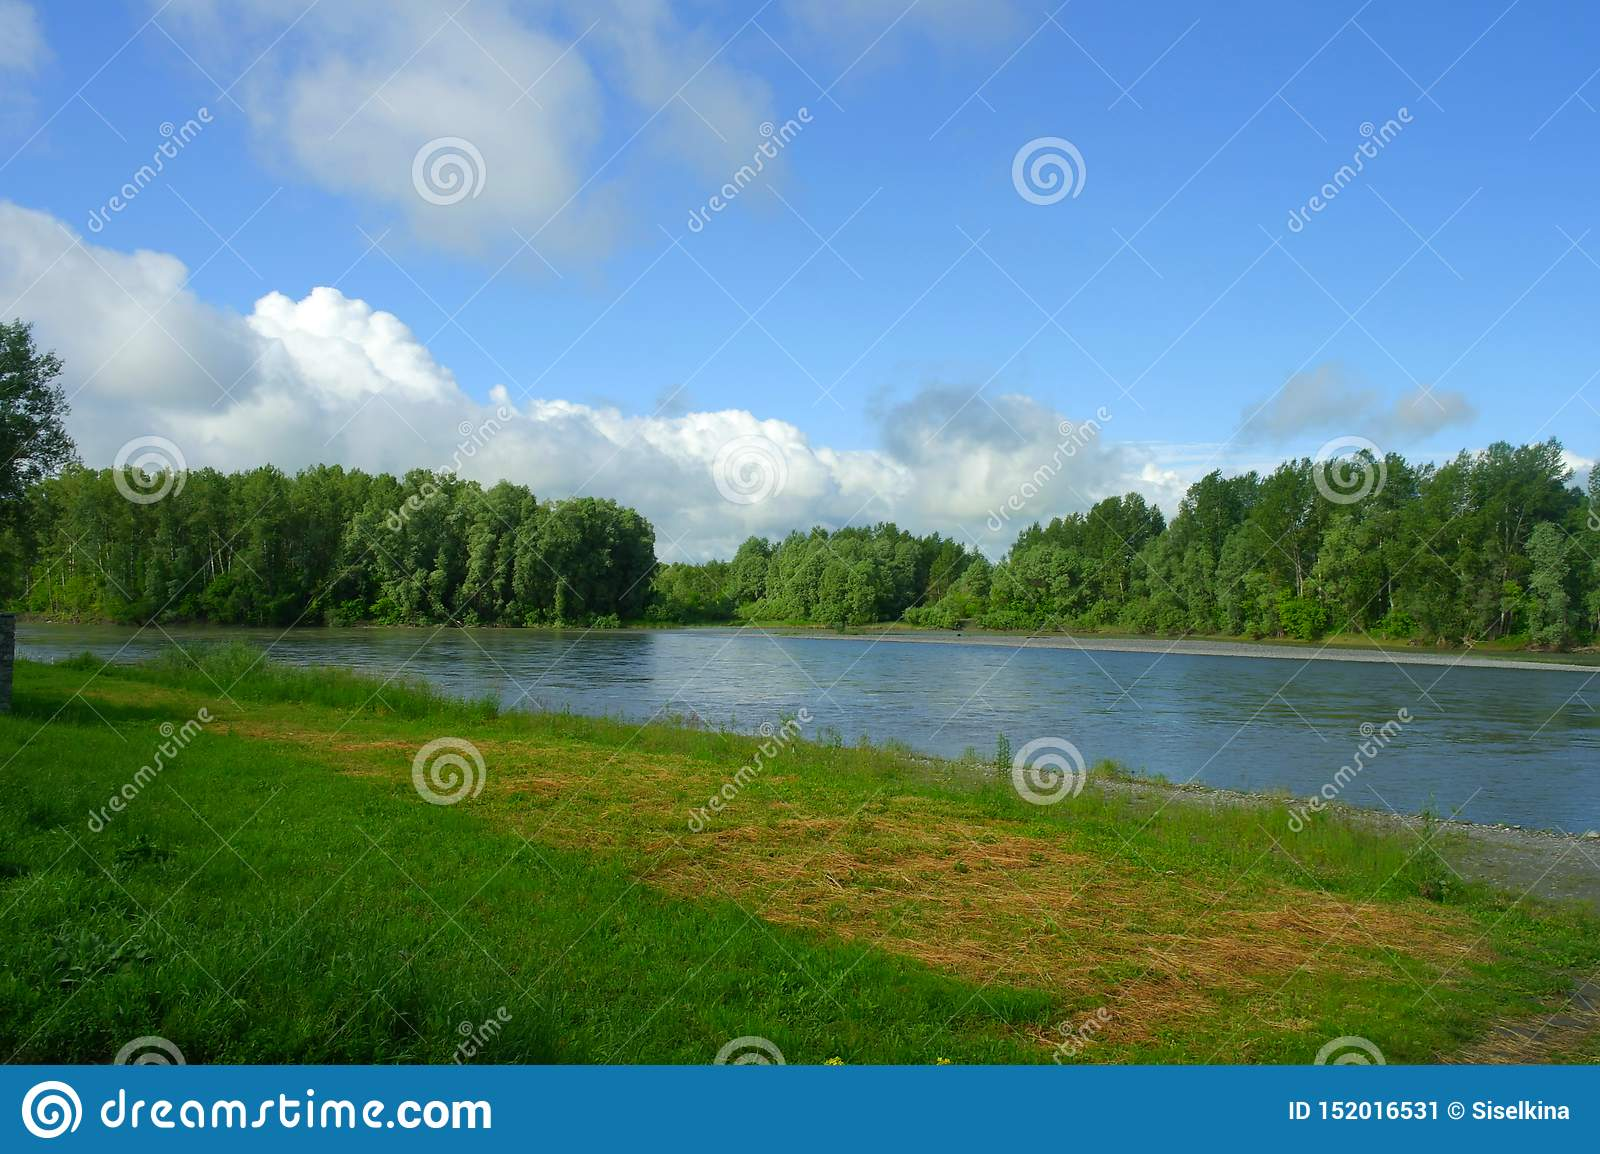 Landscape, blue river flows. Along the banks is bright green grass and forest. Above them is a blue sky with white clouds